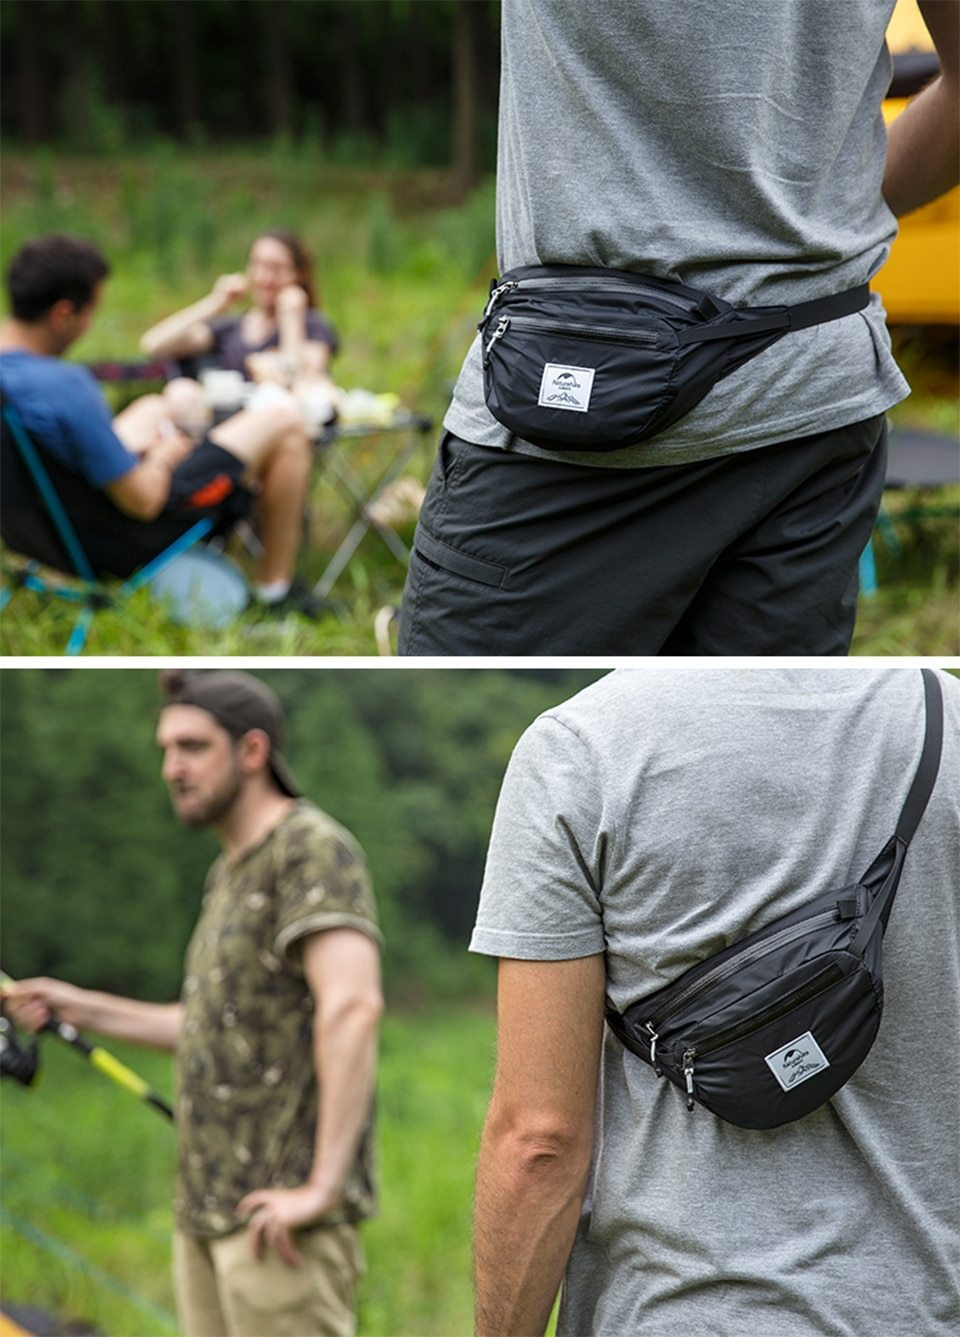 Man wearing a Naturehike Packable Fanny Pack - Foldable Bag